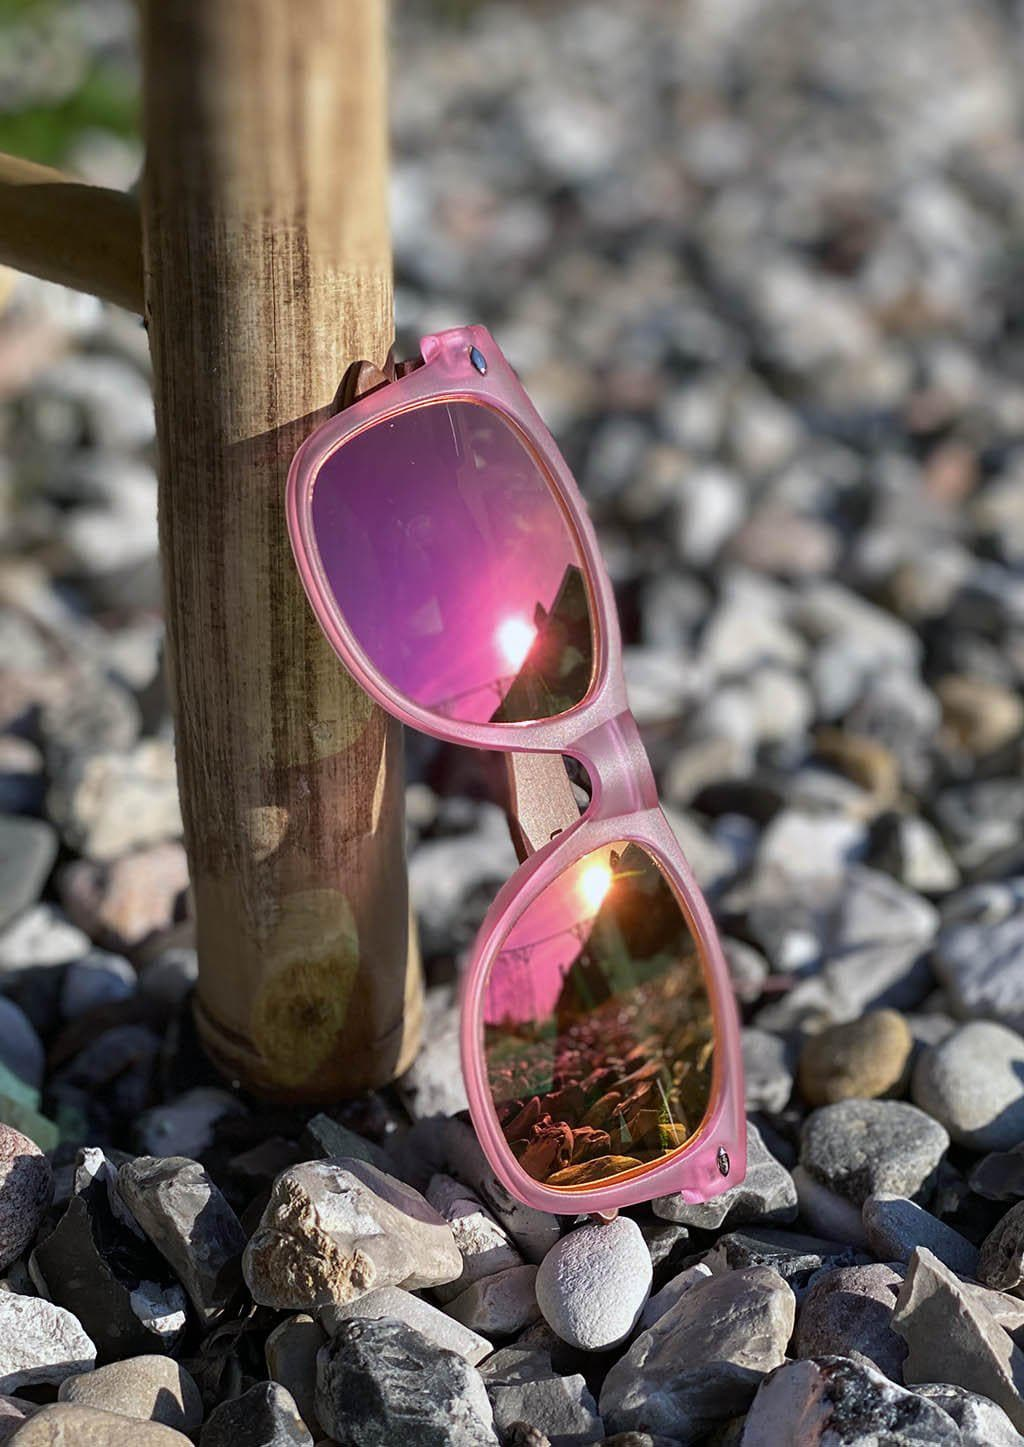 Eyewood Wayfarer - Coral - Nice wayfarers with pink frame and pink lenses. Cool colors outside.